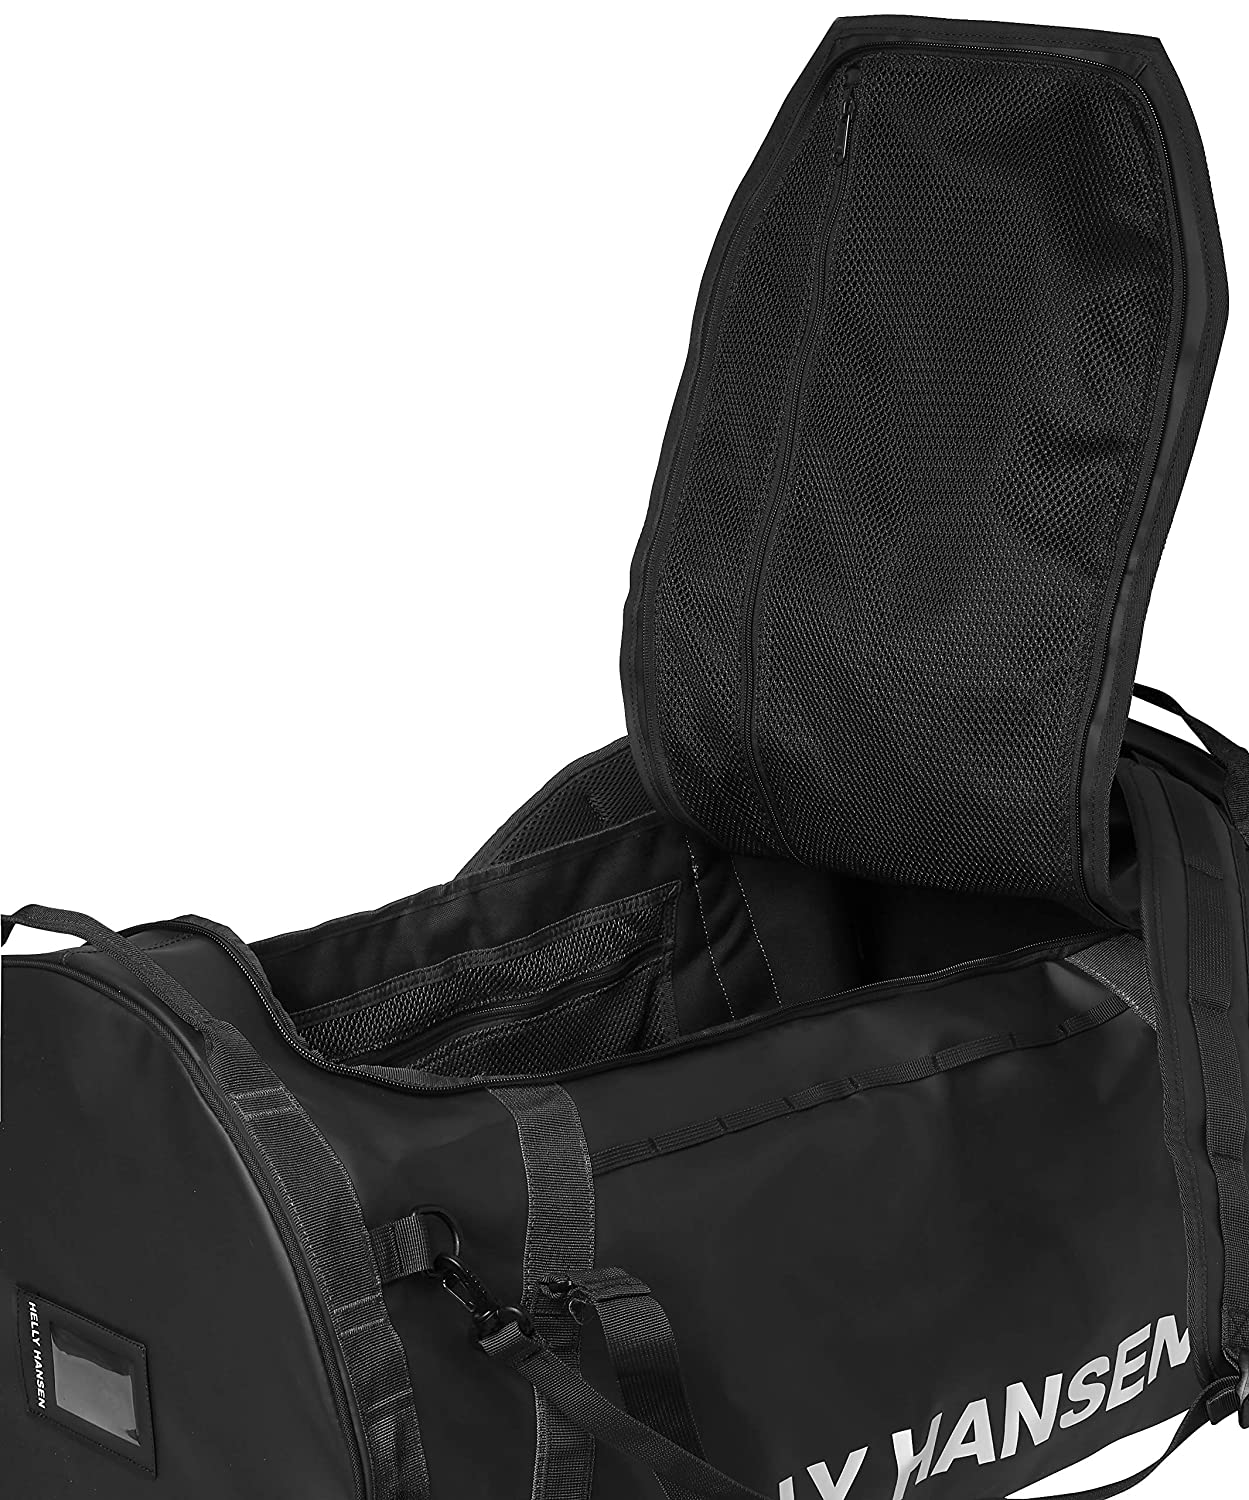 82300d0300d Amazon.com : Helly Hansen Duffel 2 Water Resistant Packable Bag with  Optional Backpack Straps, 90-liter (Large), 990 Black : Clothing